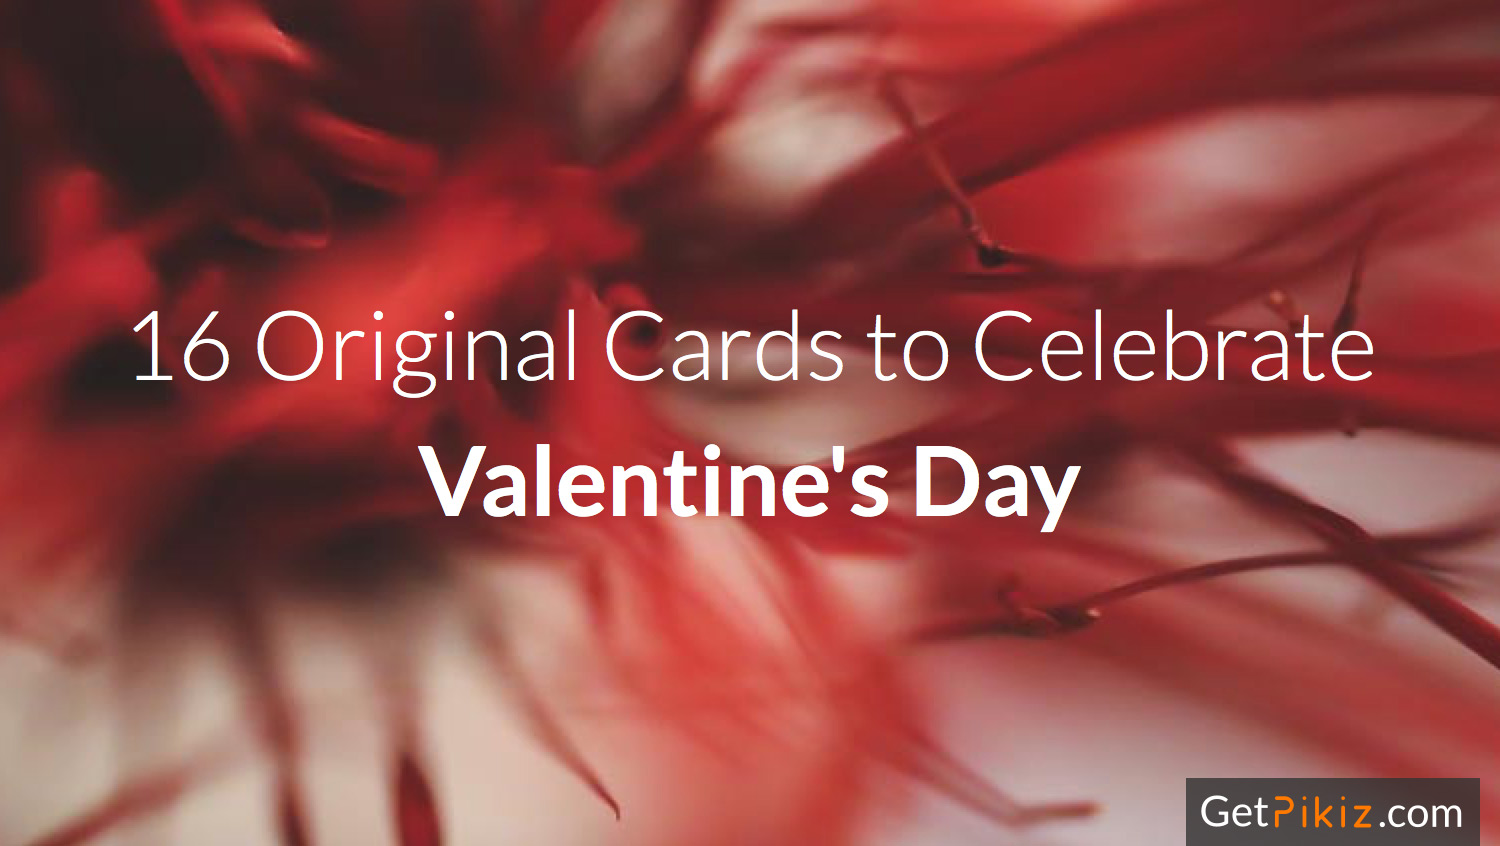 an analysis of valentines day card Valentine's day stories i had sent valentine cards to all my friends and family members but when i opened my mailbox on the morning of february 14th.